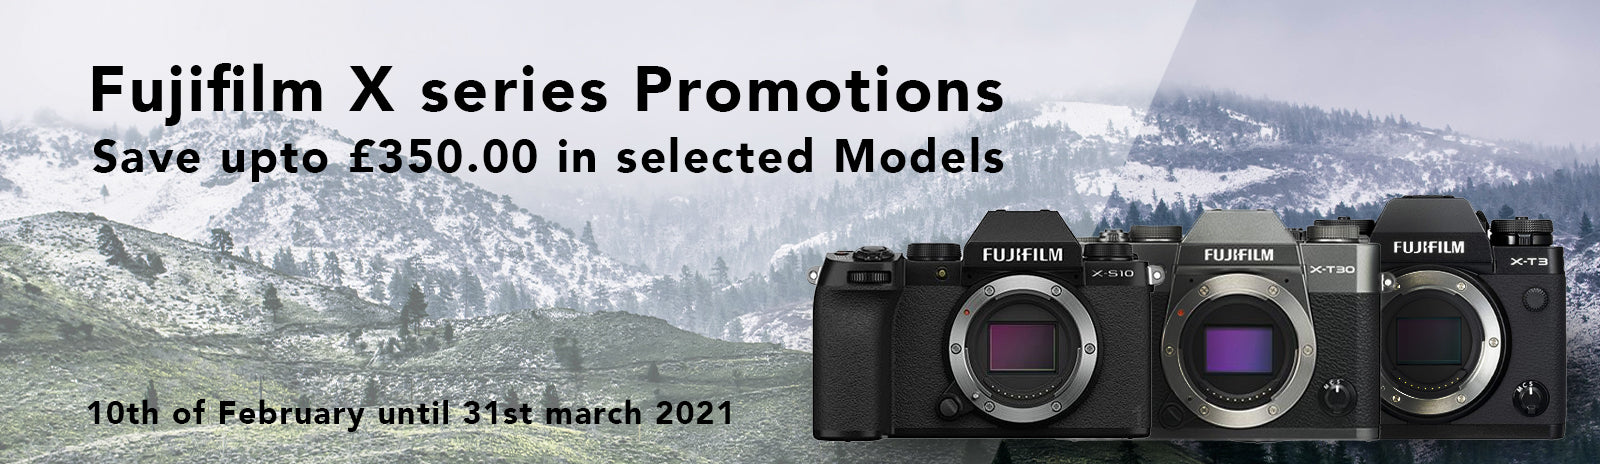 Fujifilm X series Promotions